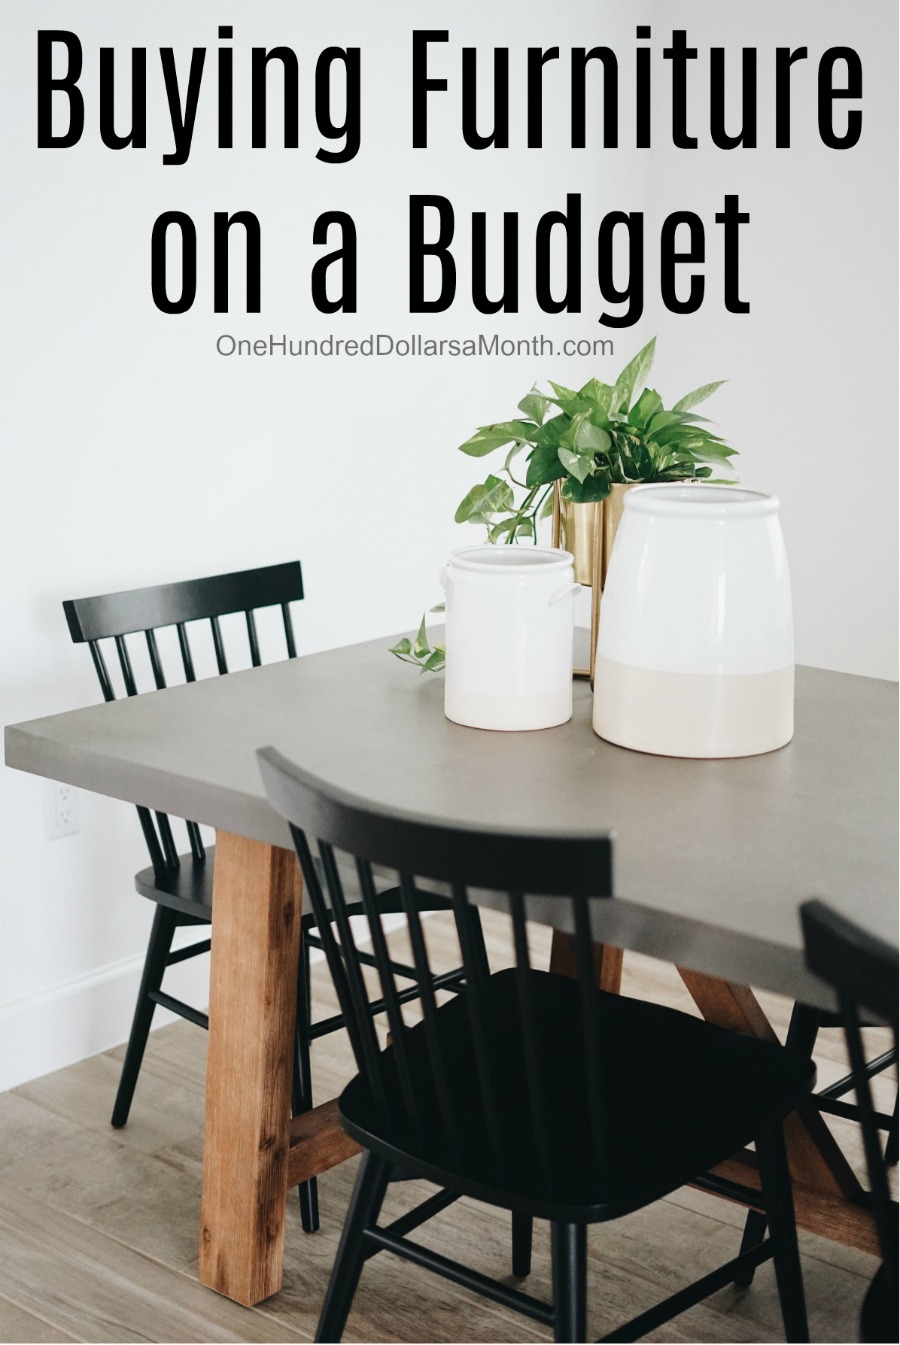 Buying Furniture on a Budget